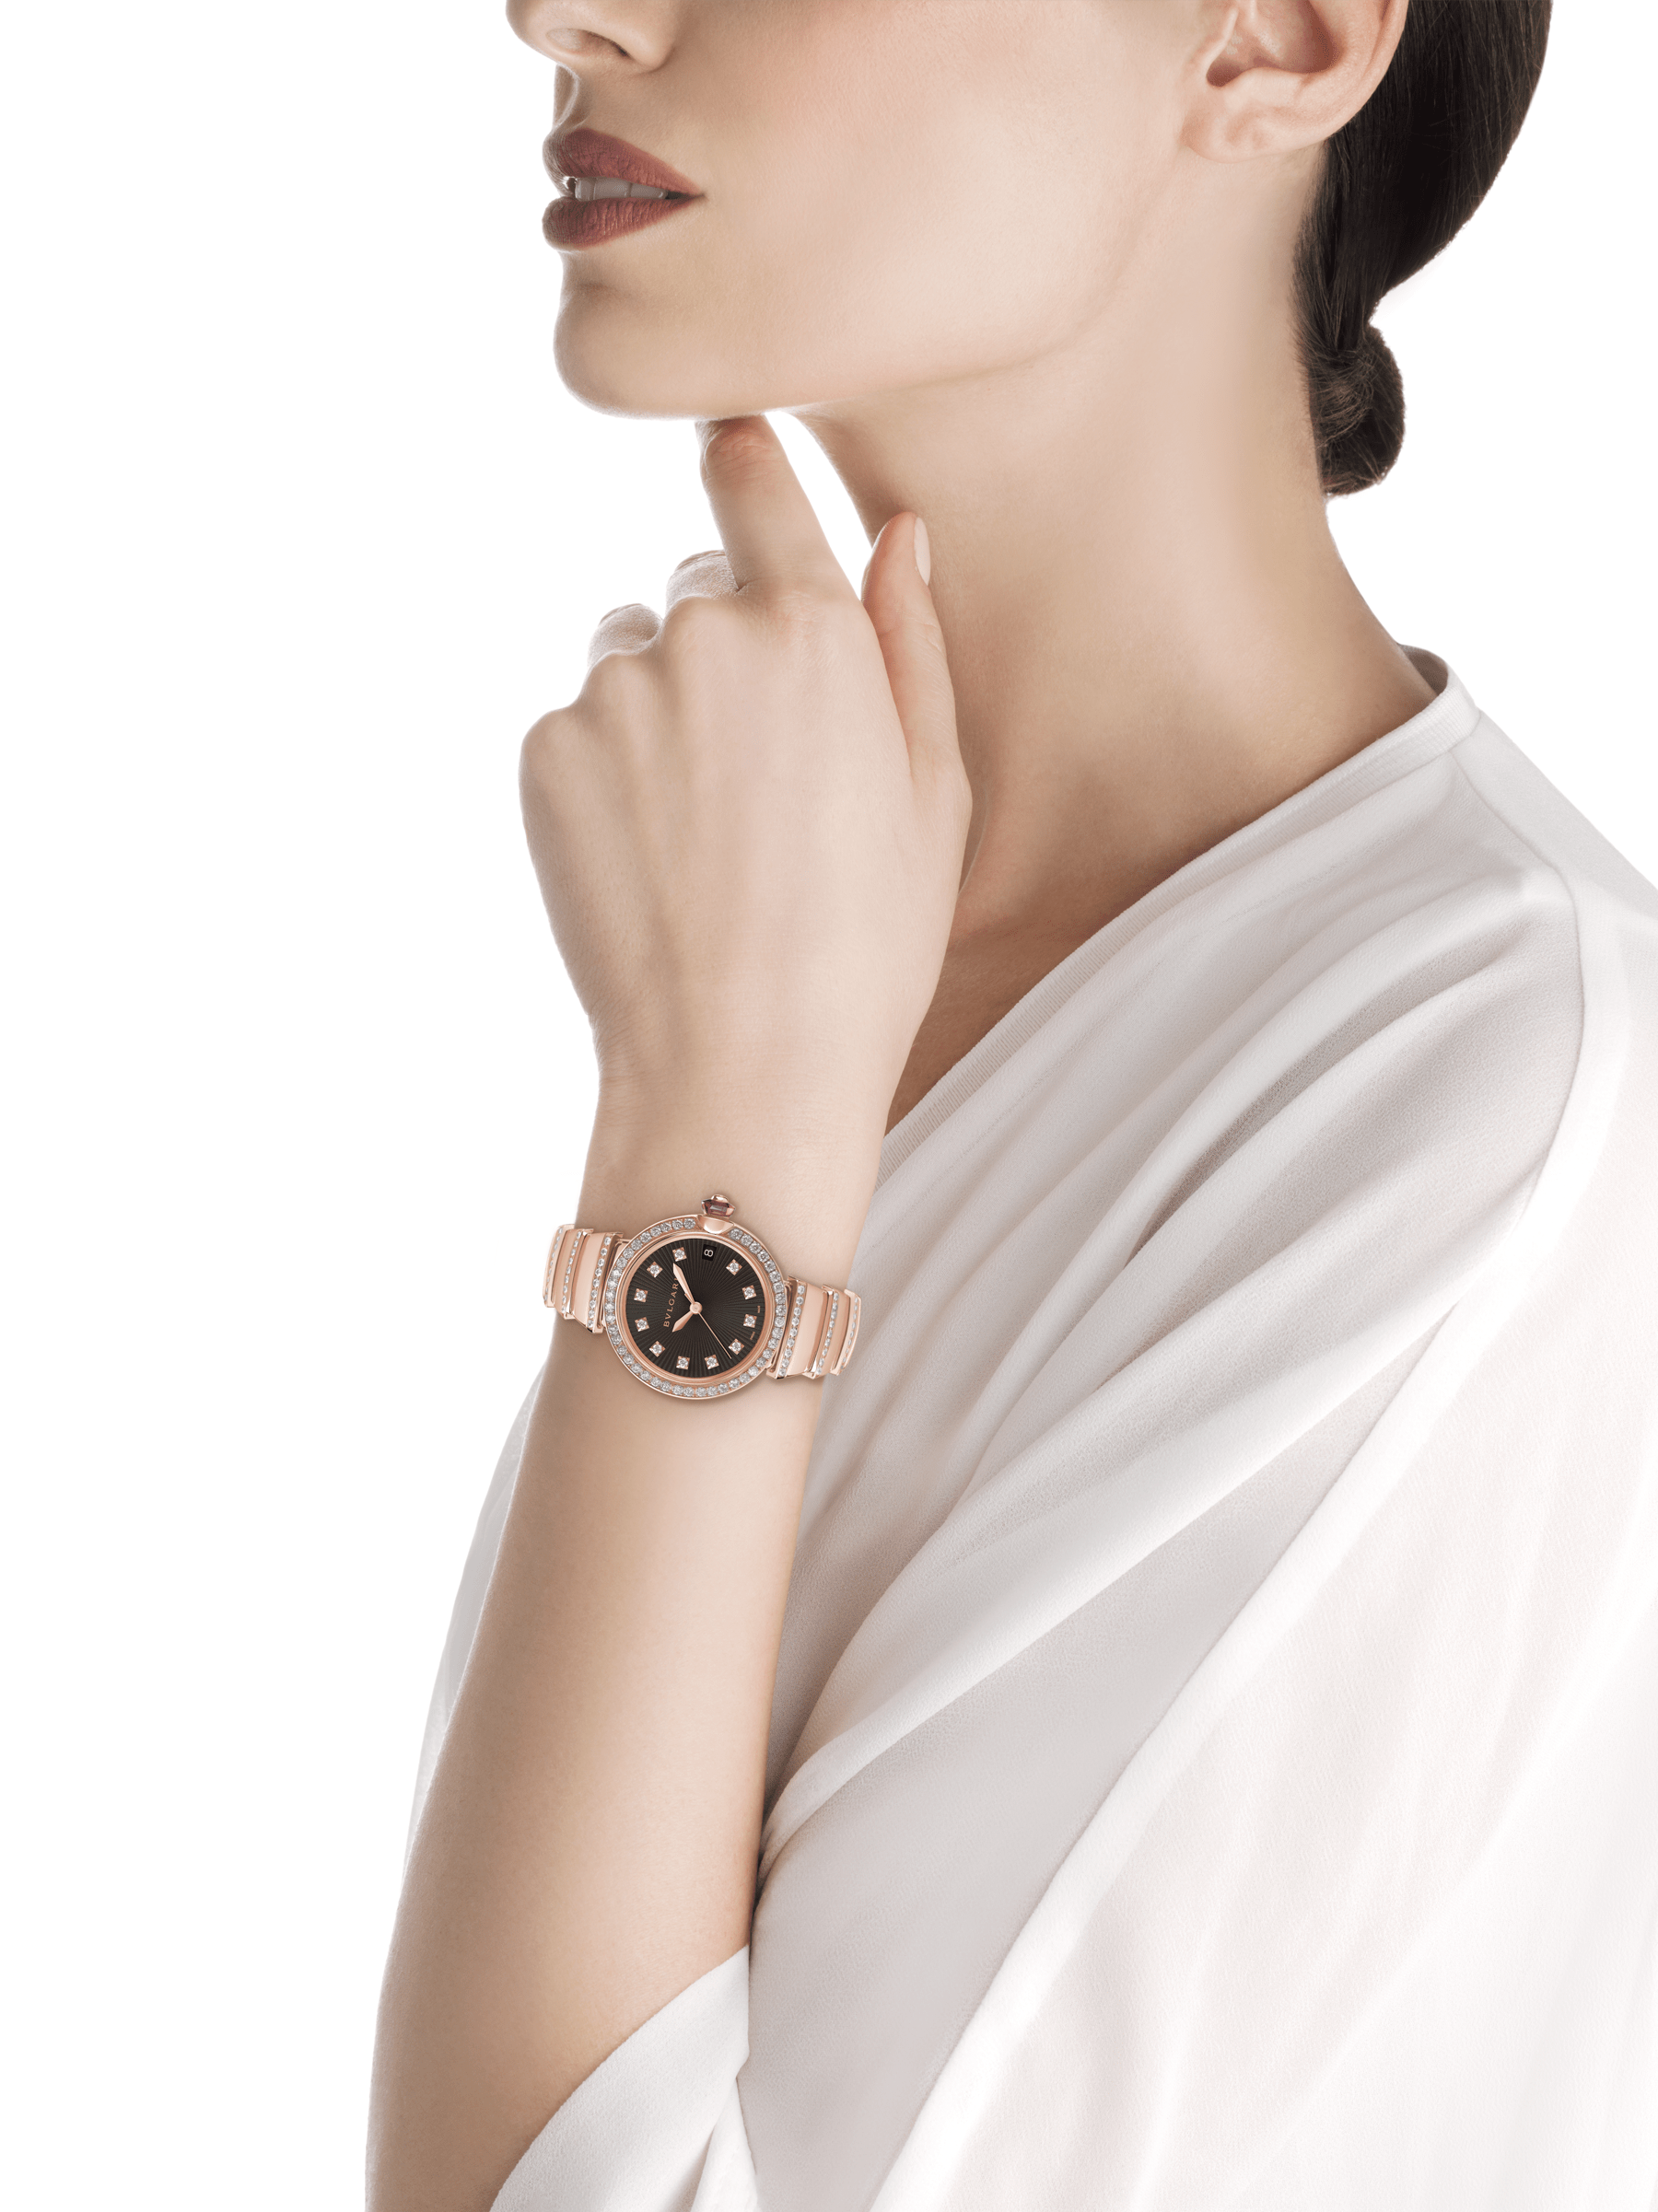 LVCEA watch in 18 kt rose gold and brilliant-cut diamond case and bracelet, with black opaline dial. 102191 image 5